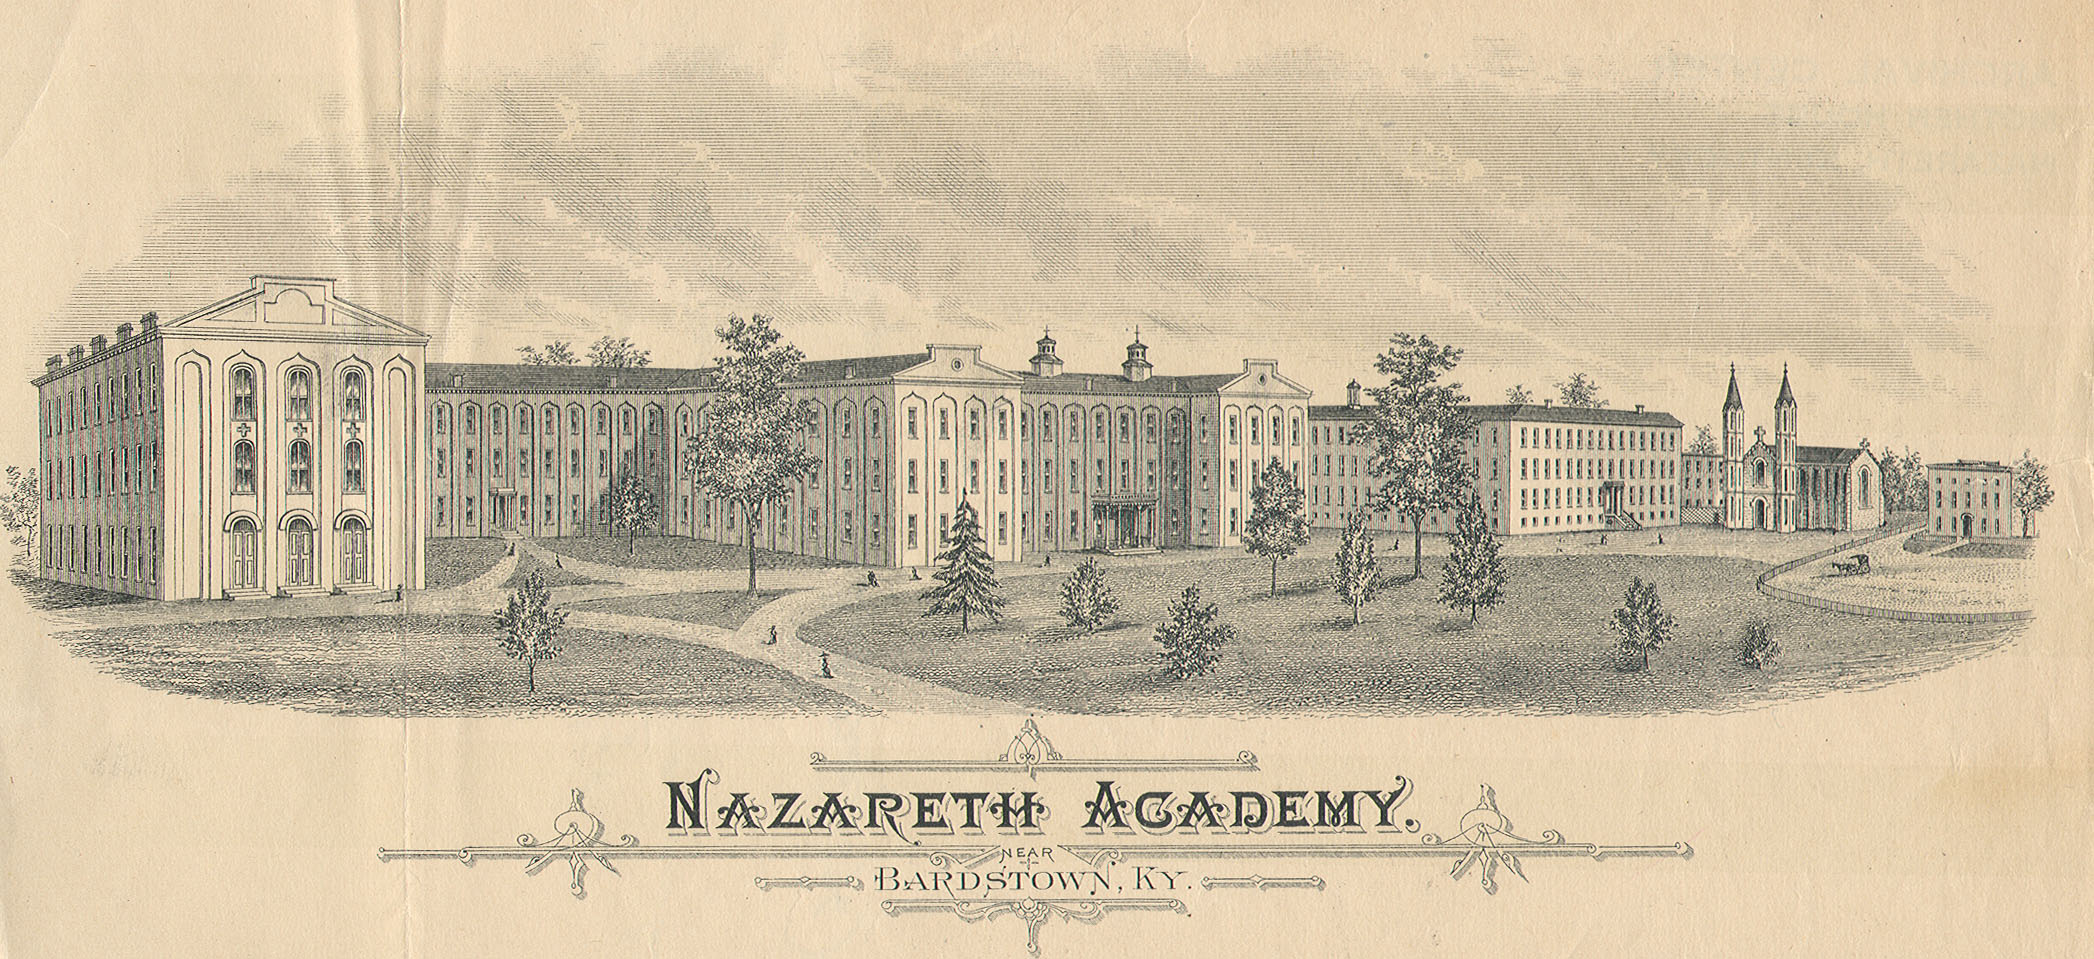 An 1871 illustration of the Nazareth Academy, Bardstown, KY